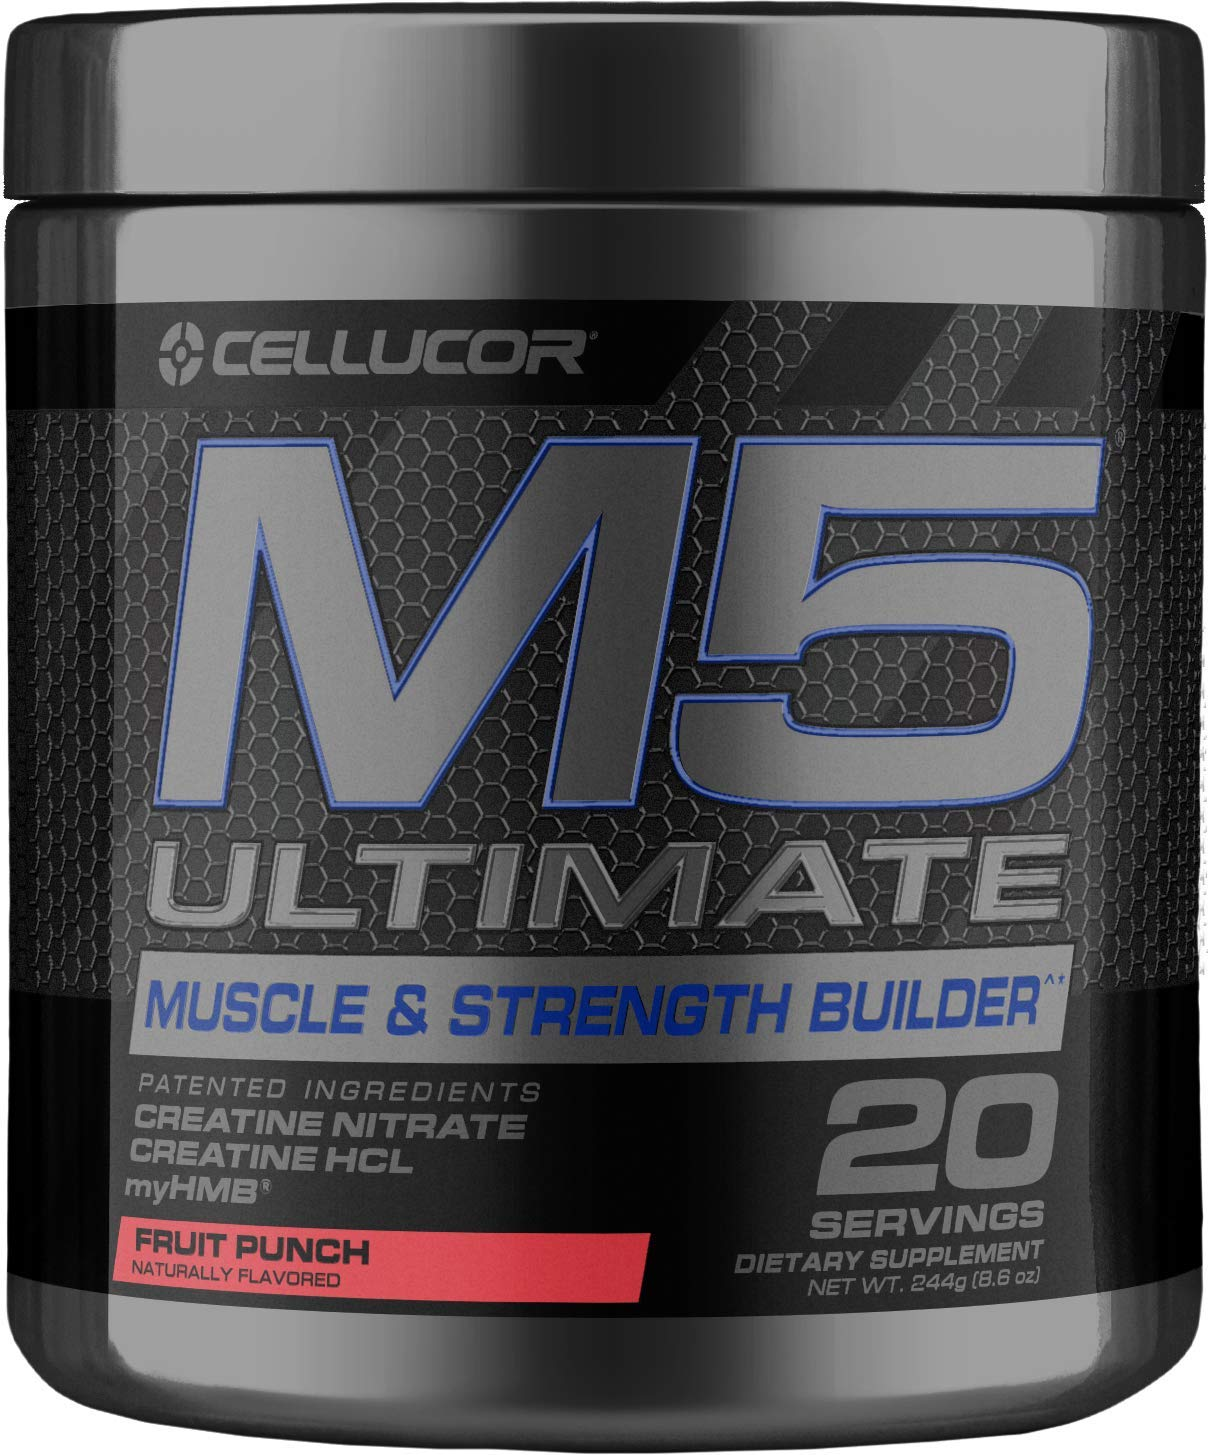 Cellucor M5 Ultimate Post Workout Powder Fruit Punch | Muscle & Strength Building Supplement | Creatine Monohydrate + Creatine Nitrate + Creatine HCL + HMB | 20 Servings by Cellucor